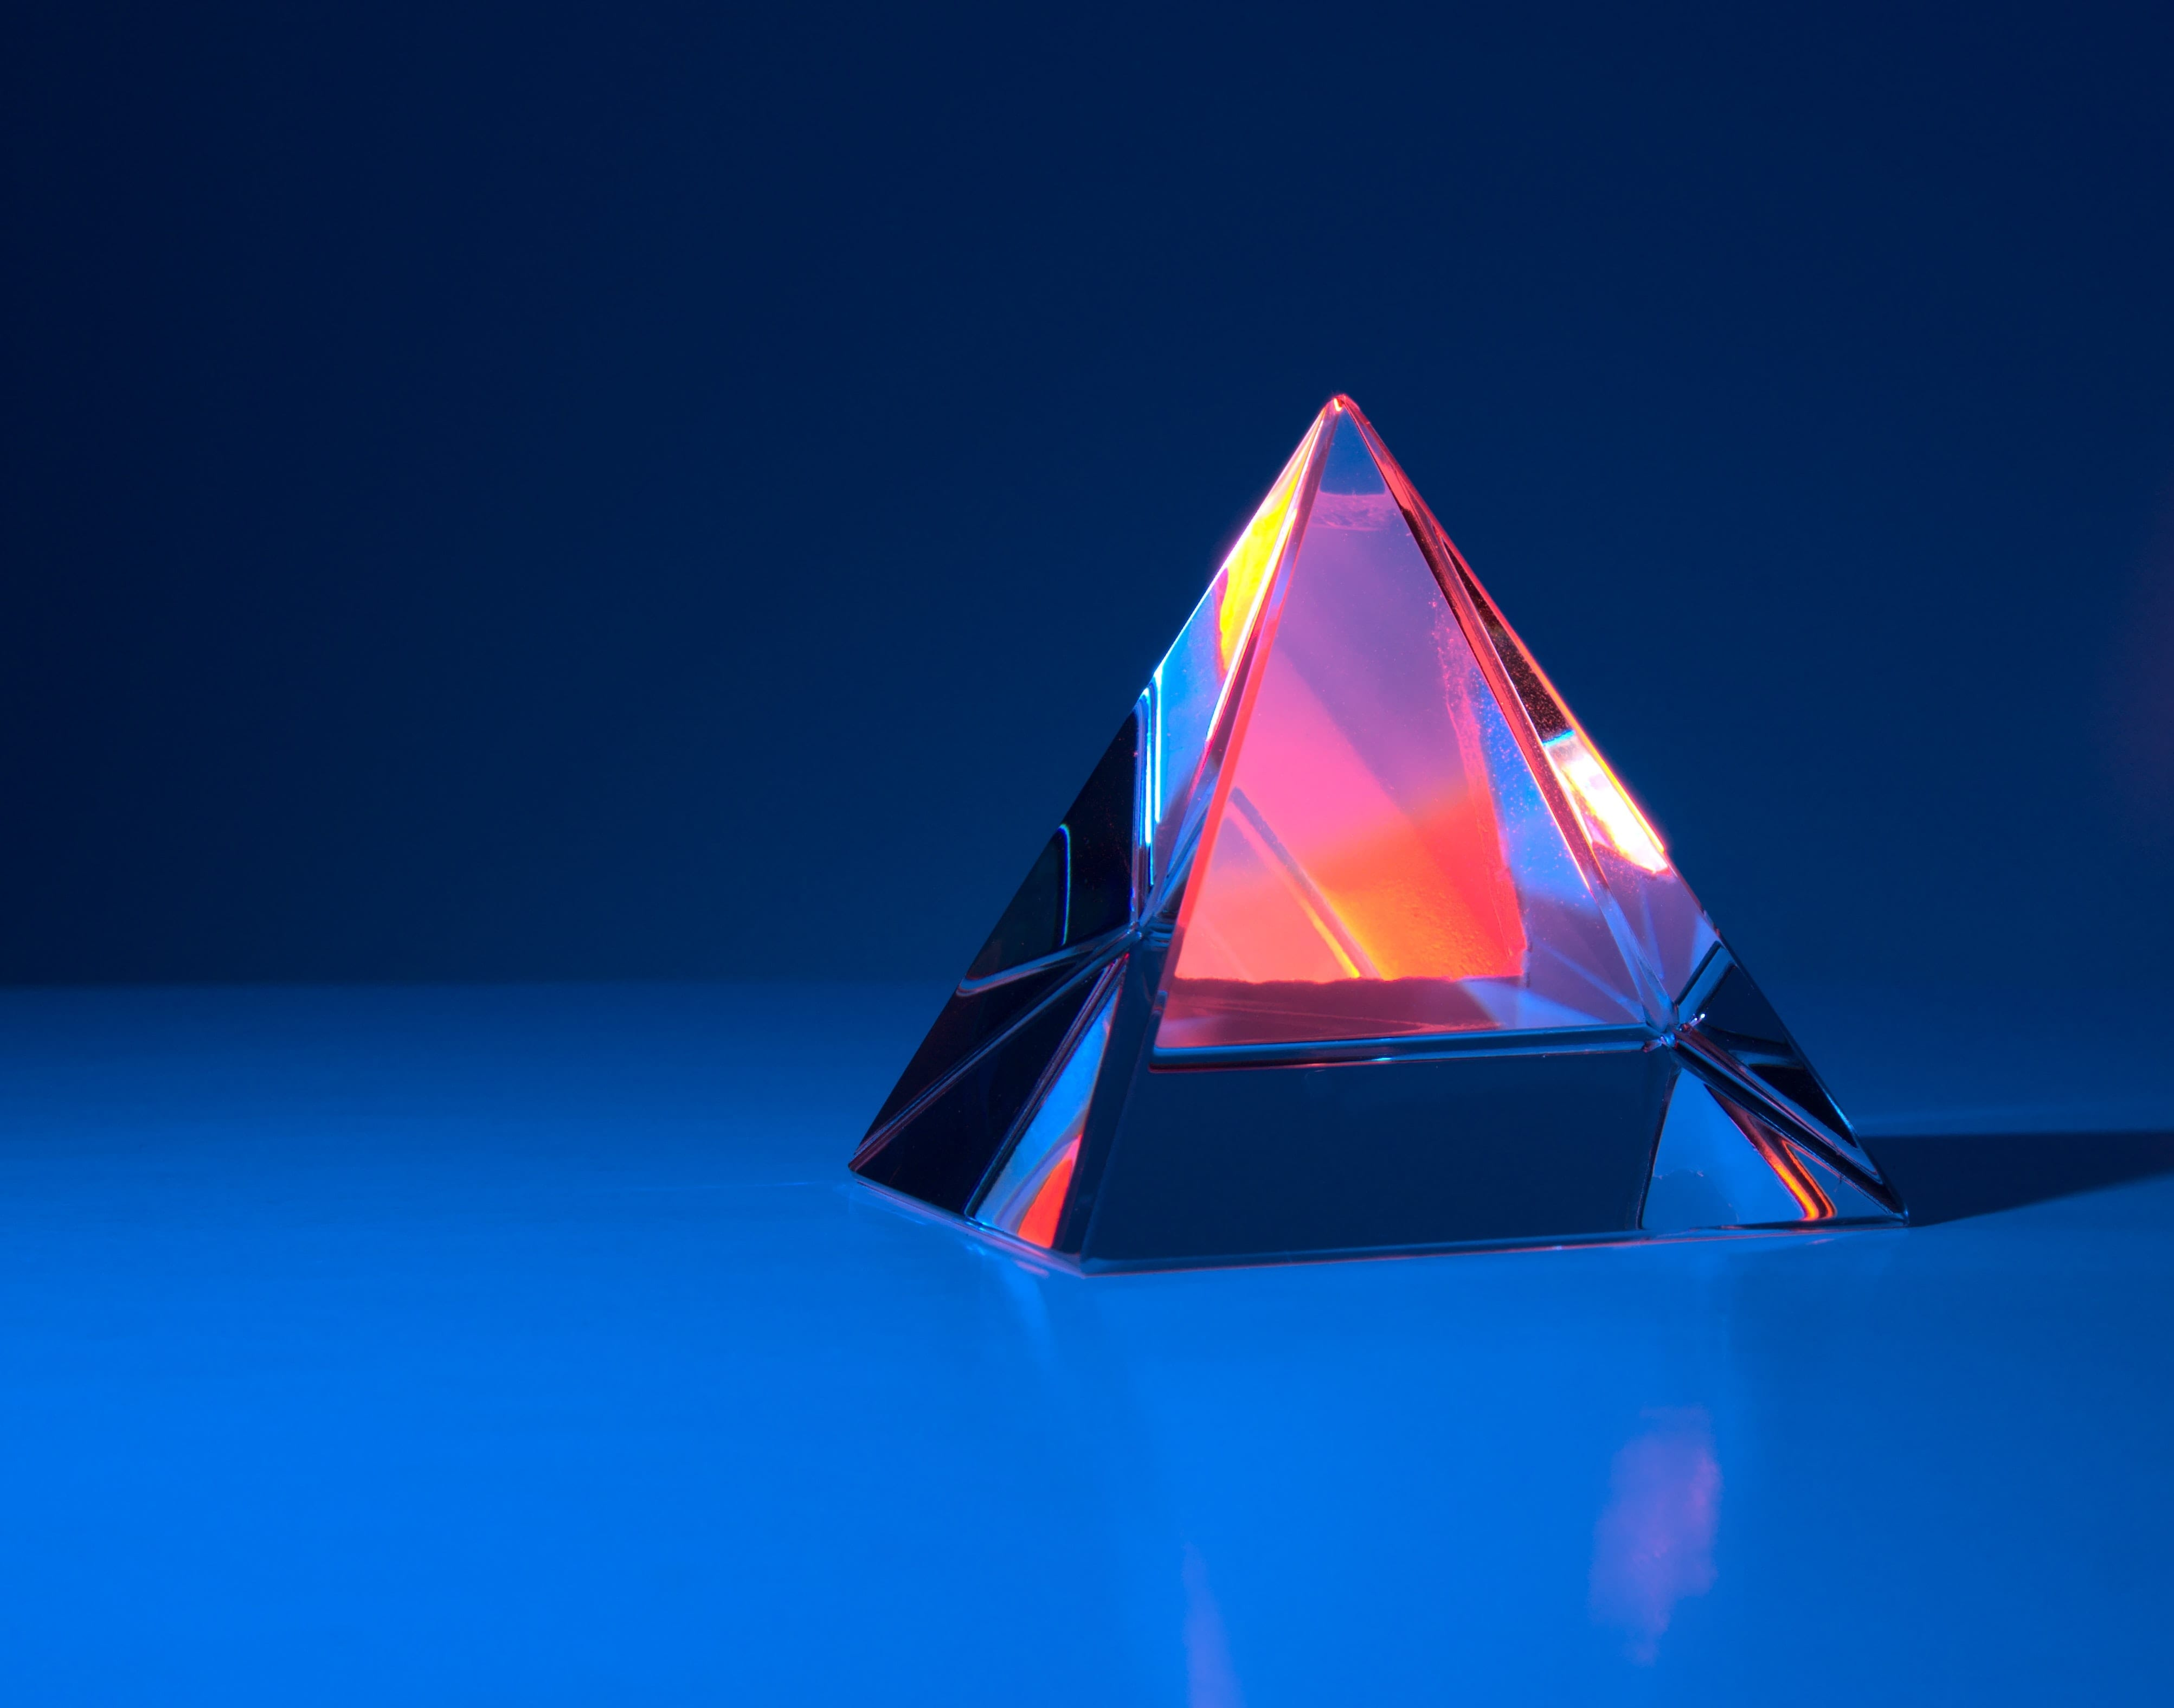 graphic design of pyramid with orange and yellow colours on blue background